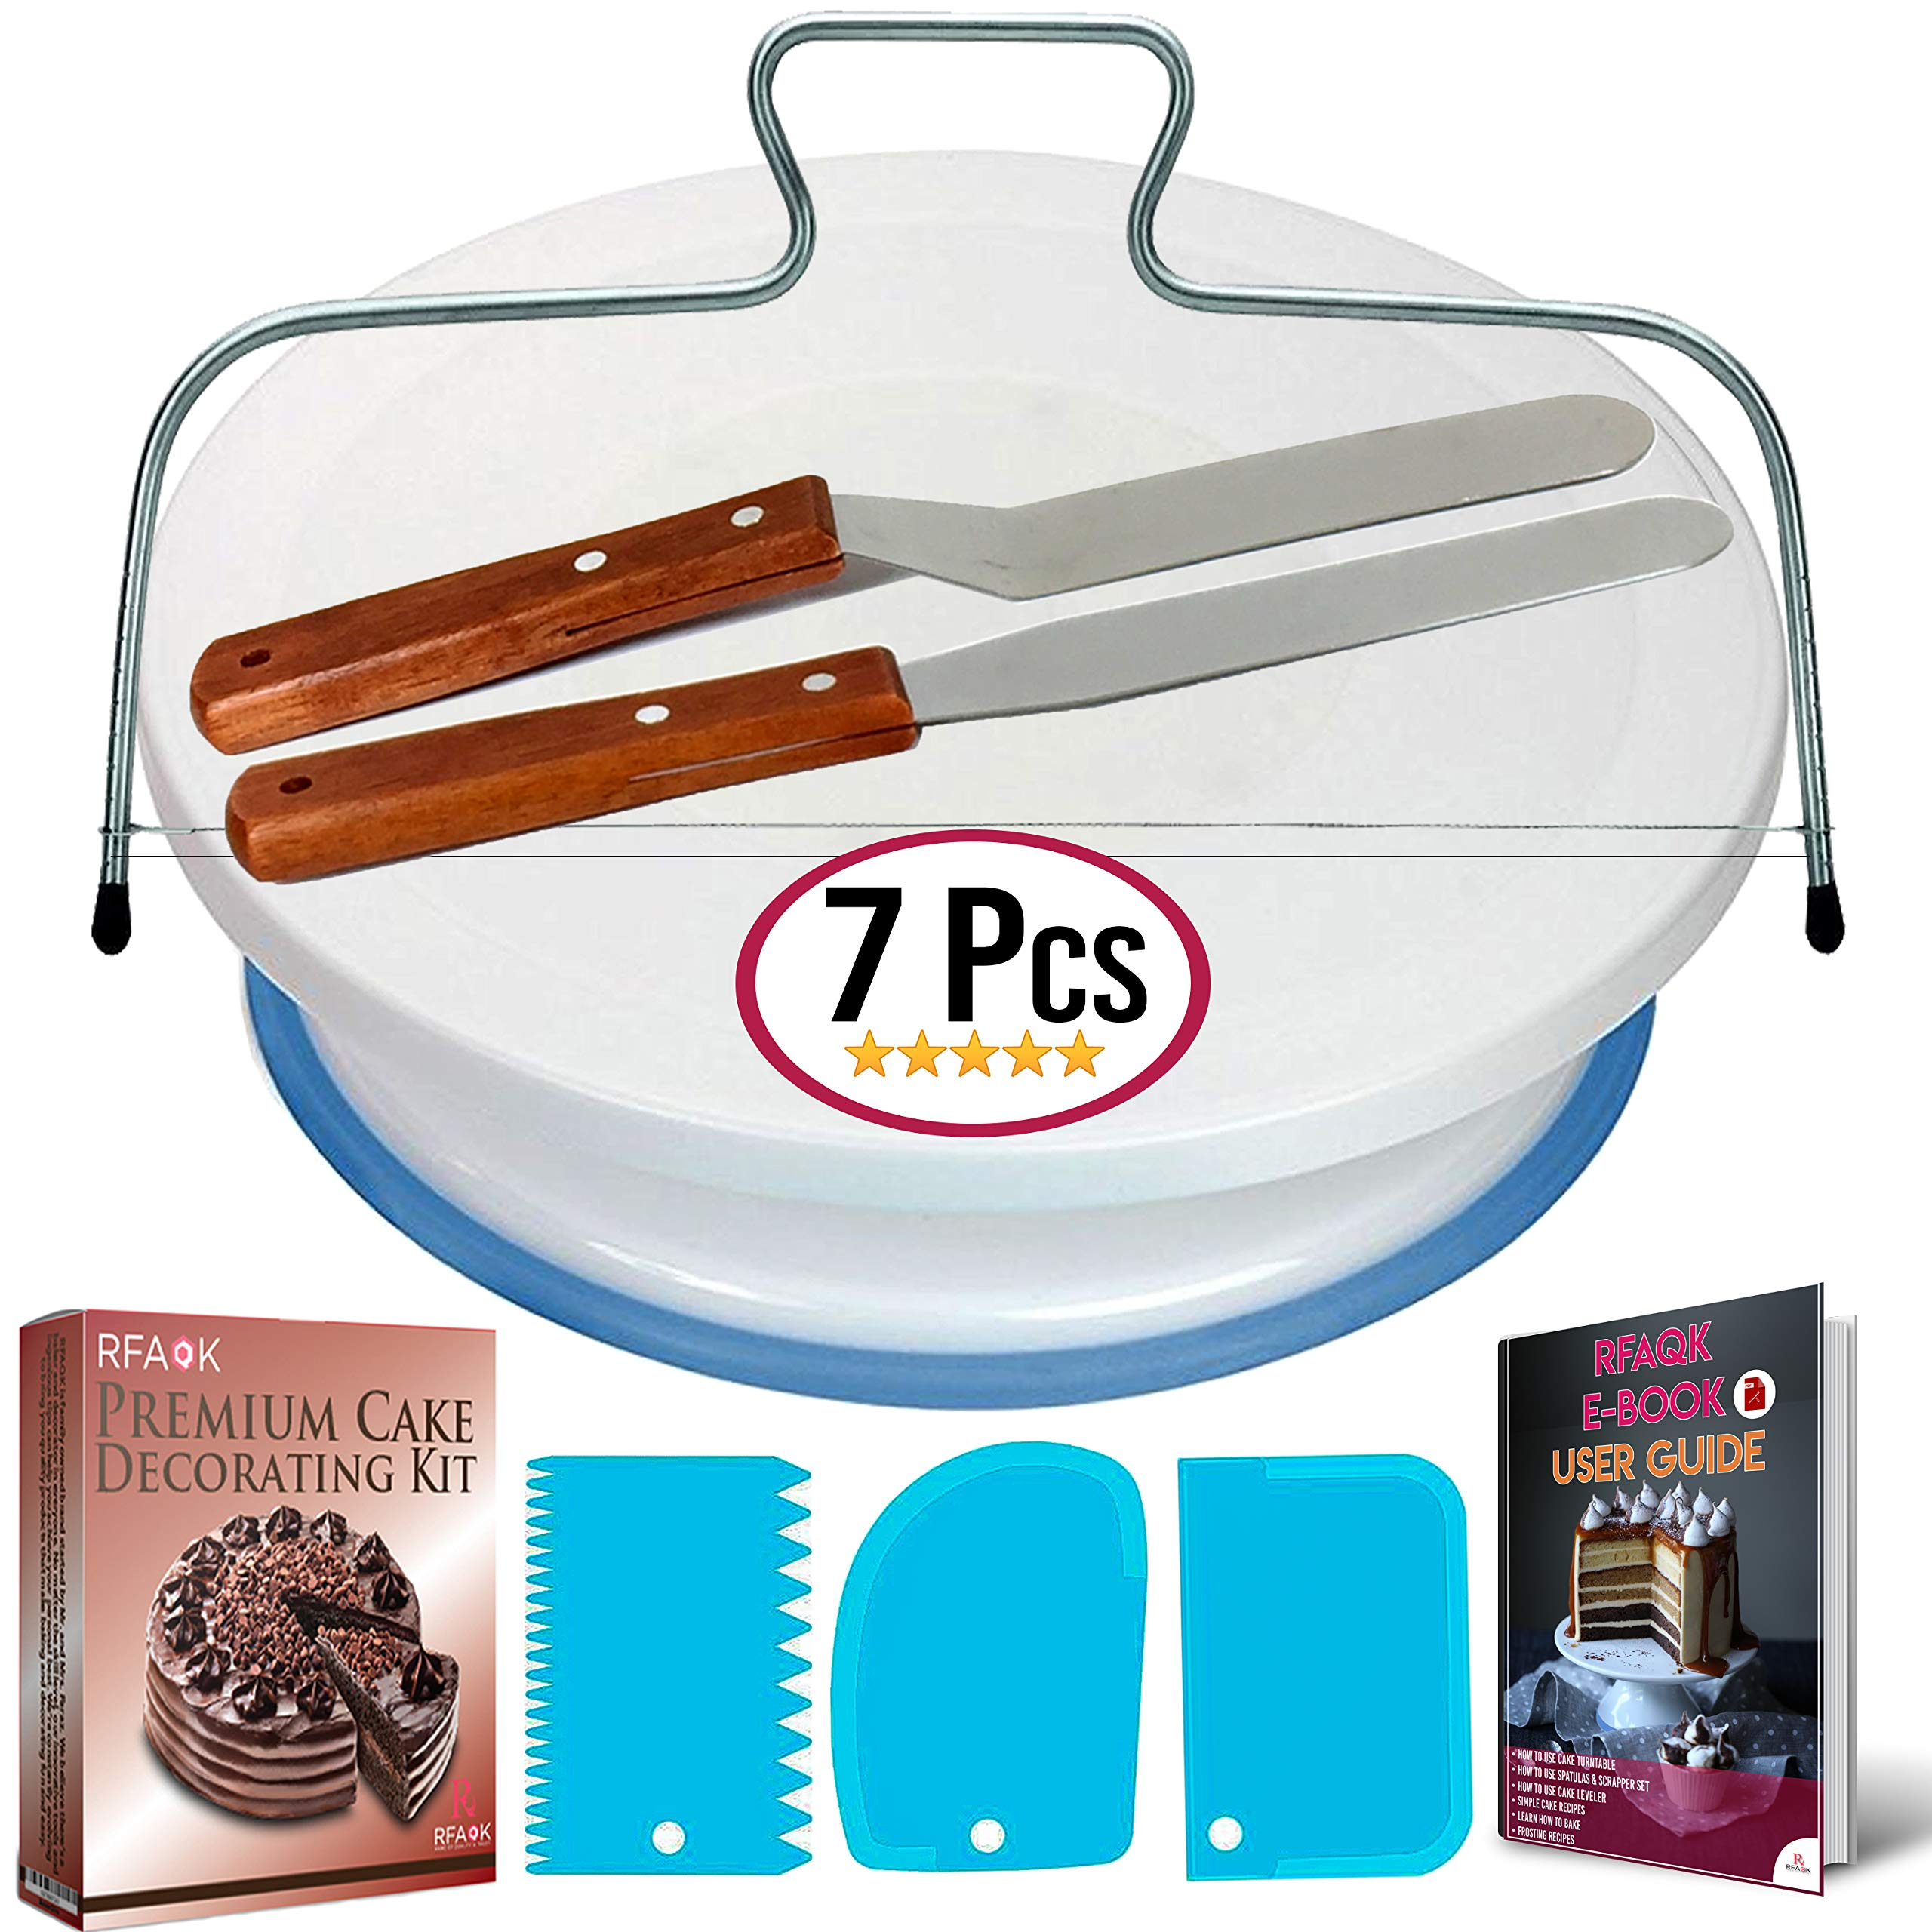 Cake Turntable and Leveler-Rotating Cake Stand with non slip pad- Straight & Offset Spatula-3 Icing Smoother Scraper Set -EBook-Cake Decorating Supplies Kit for Beginners -Baking Tools & Accessories by RFAQK